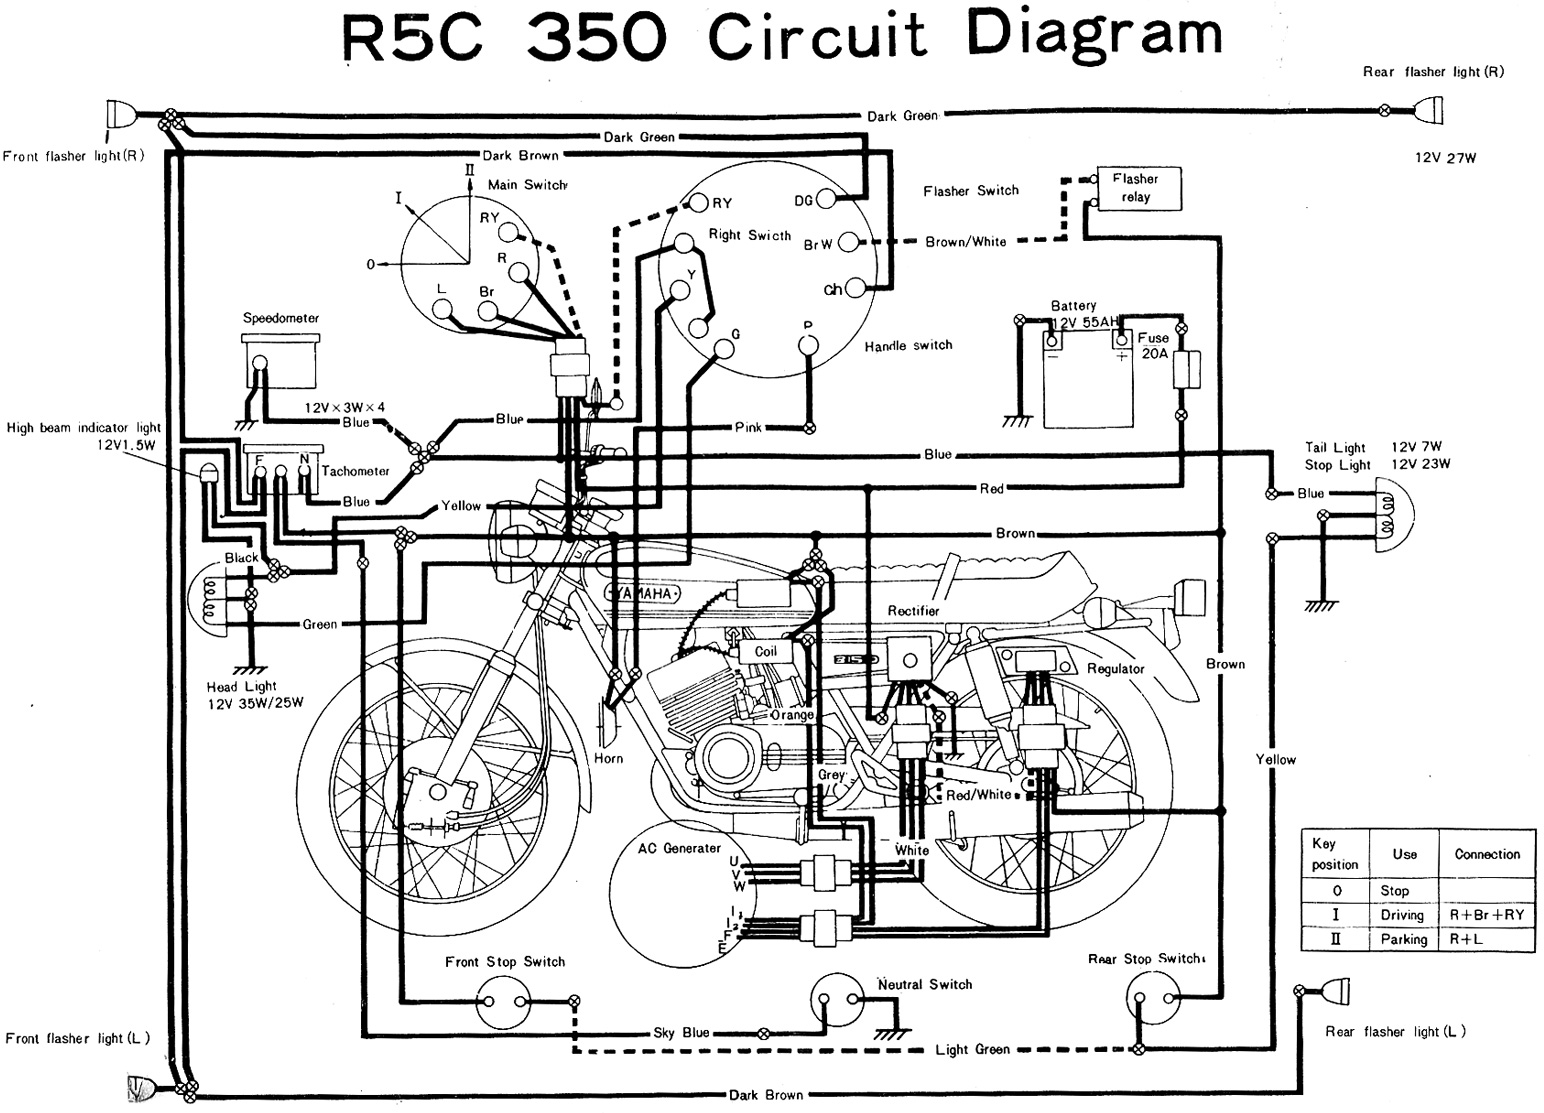 Harley Davidson Engine Timeline Big Twins also Tech besides 400850325269 as well Car Alarms On Ebay as well Electric starters. on norton wiring diagram